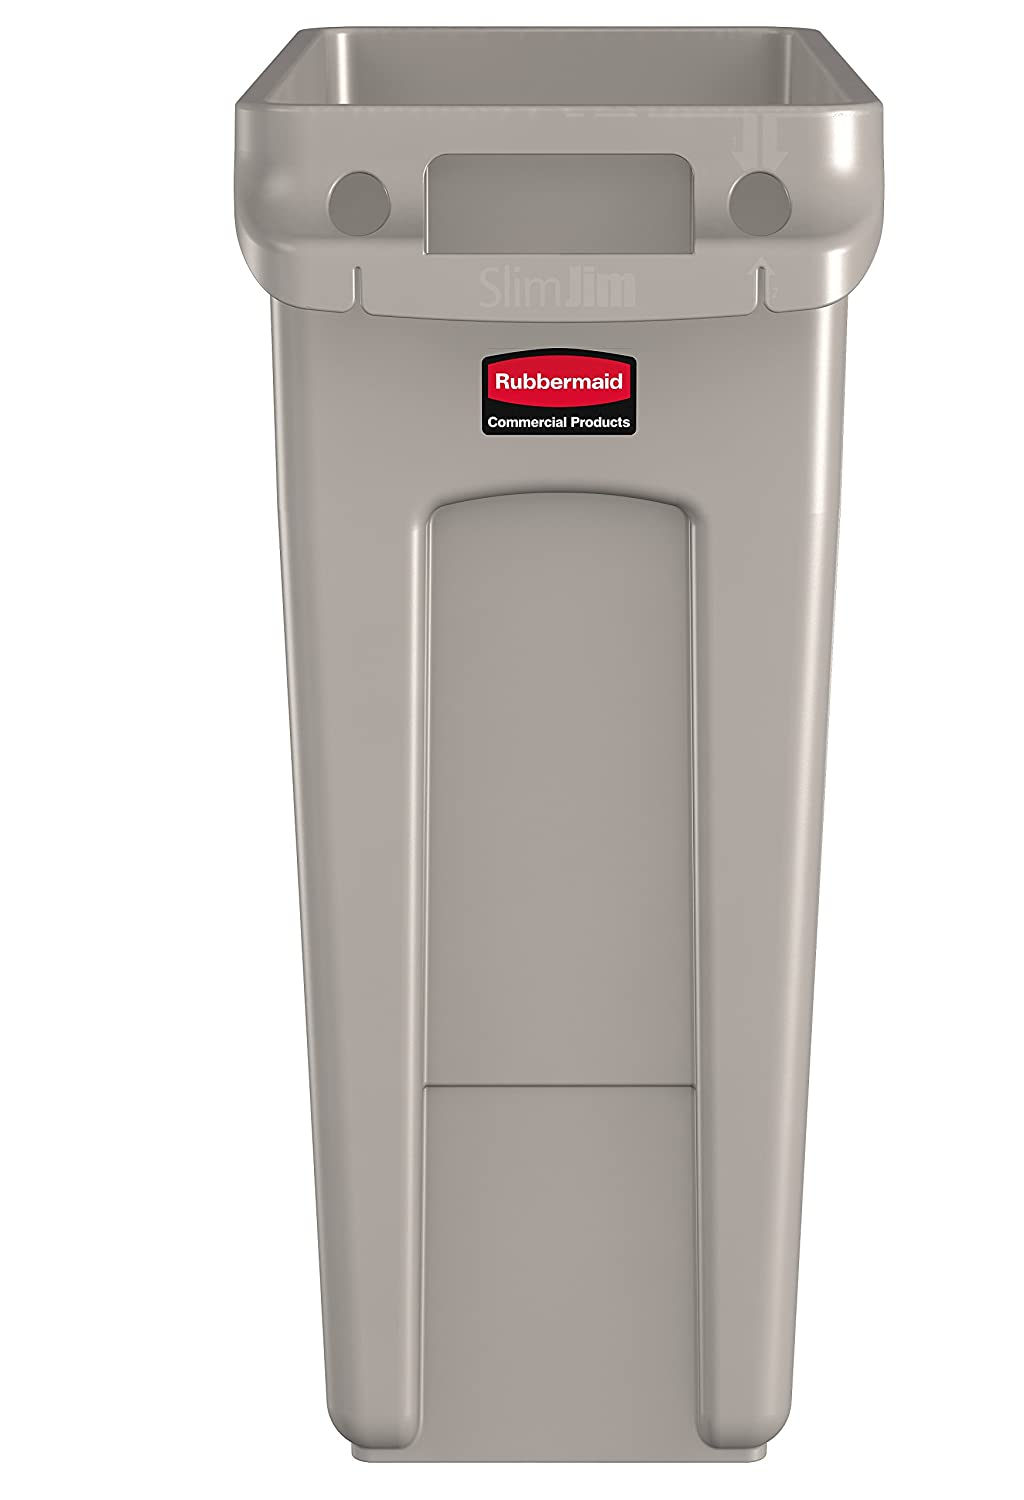 amazoncom rubbermaid commercial vented slim jim trash can waste receptacle 16 gallon beige plastic 1971259 industrial scientific - Rubbermaid Trash Cans